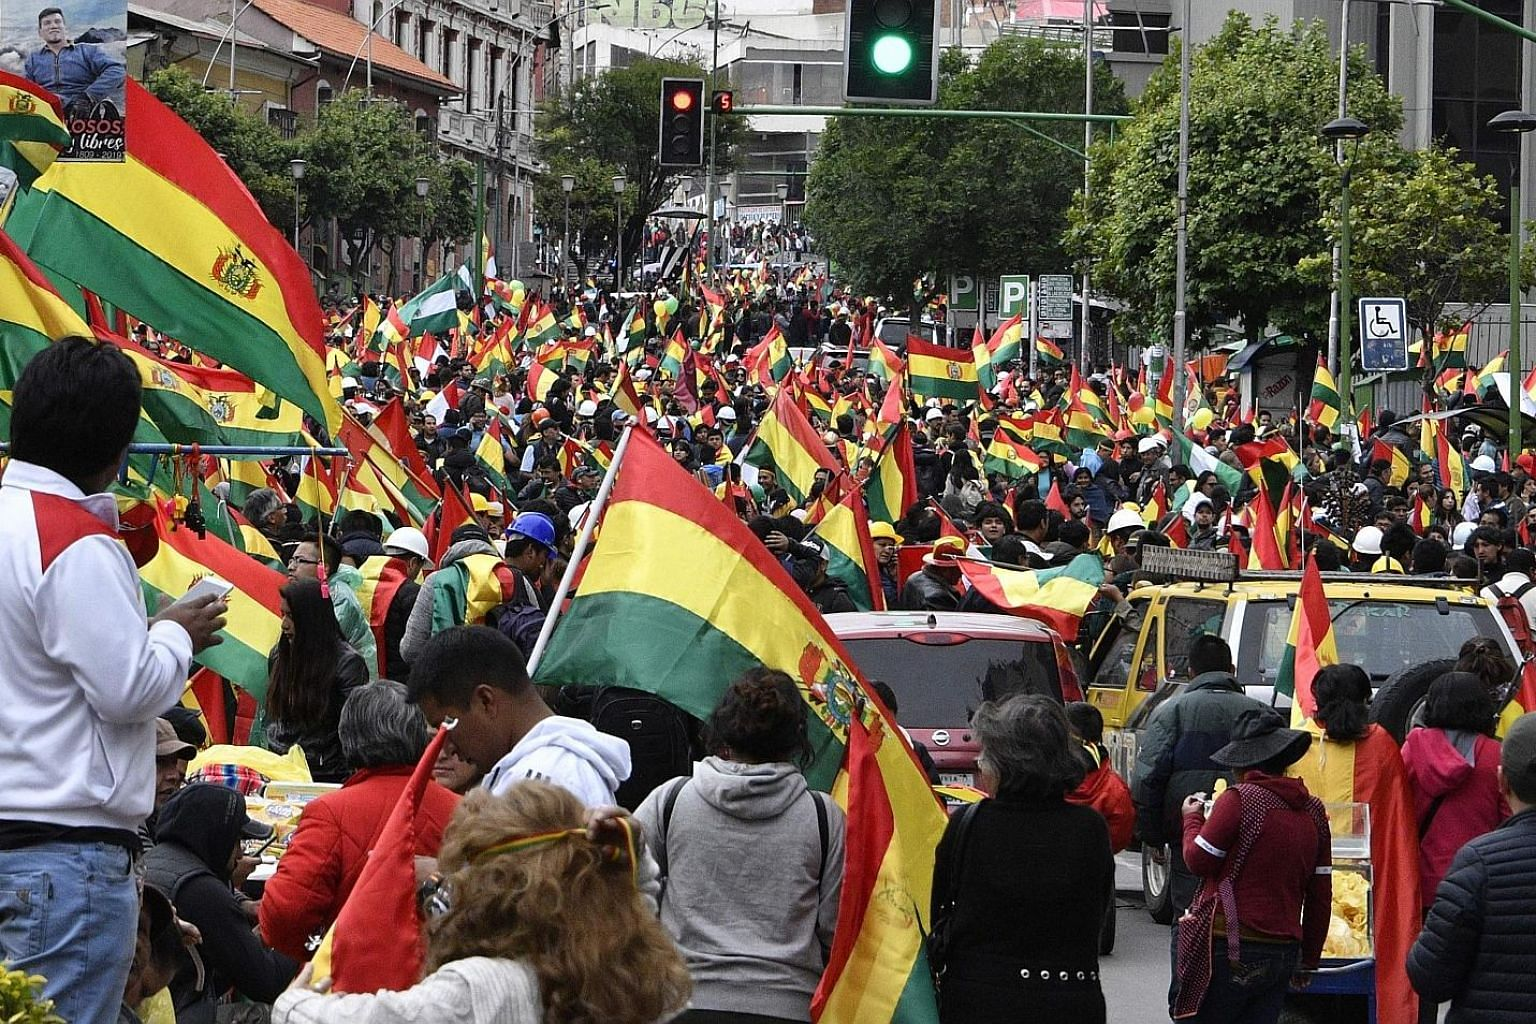 Mr Evo Morales said on Sunday he would step down to ease the violence that has gripped Bolivia since a disputed vote. Crowds taking to the streets of Bolivia's capital La Paz on Sunday to celebrate the resignation of President Evo Morales. But as nig